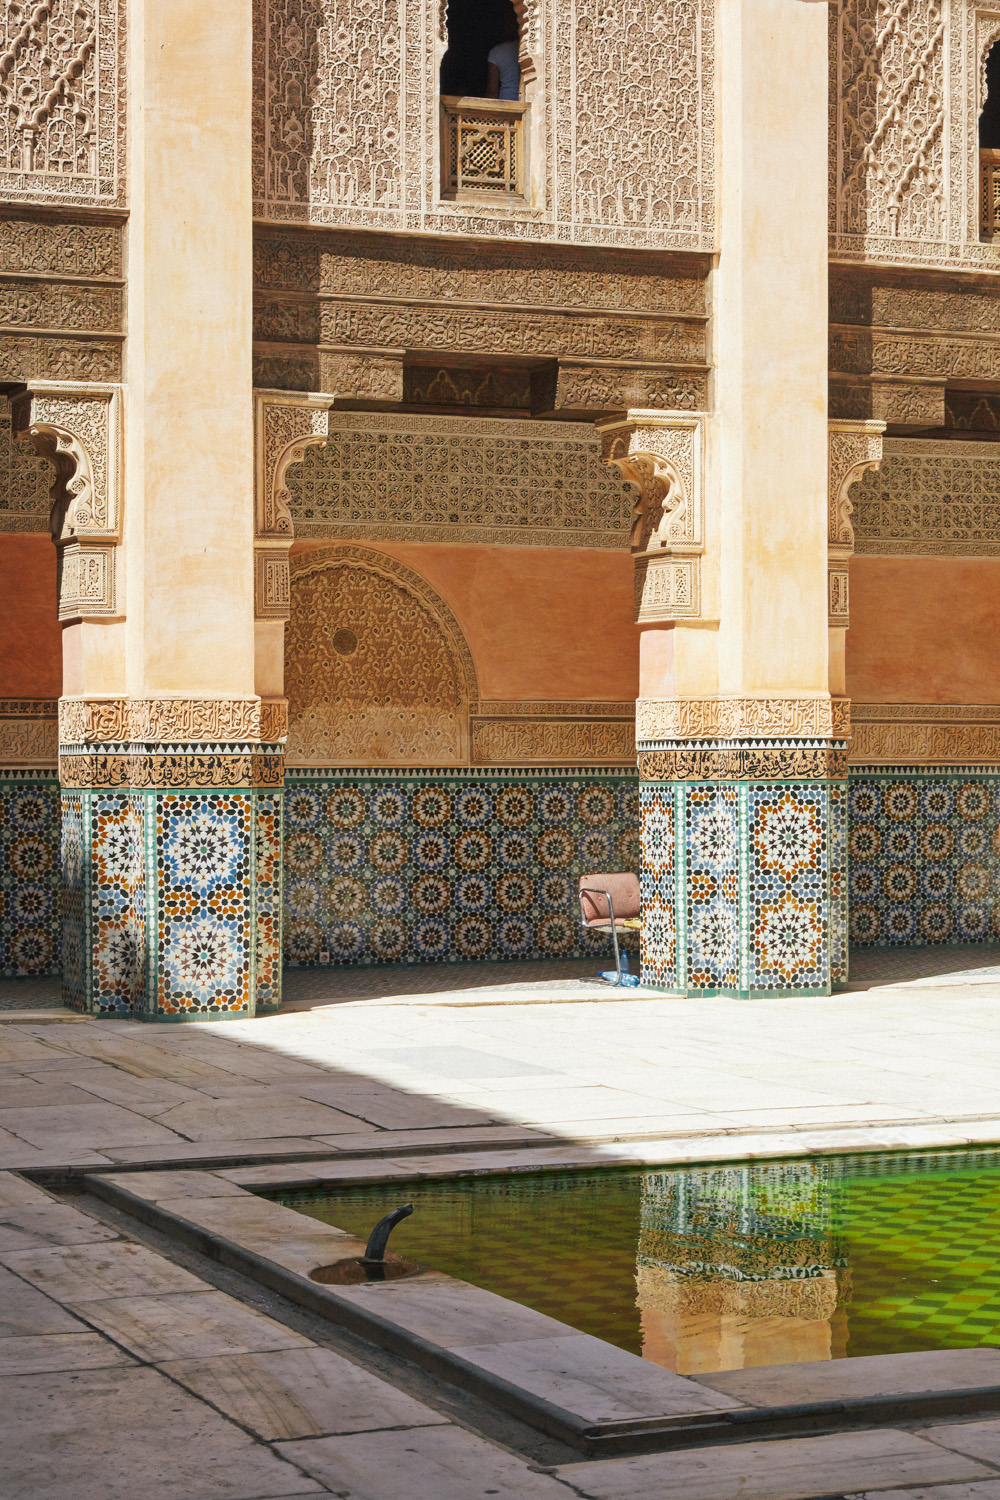 Marrakech_034_web